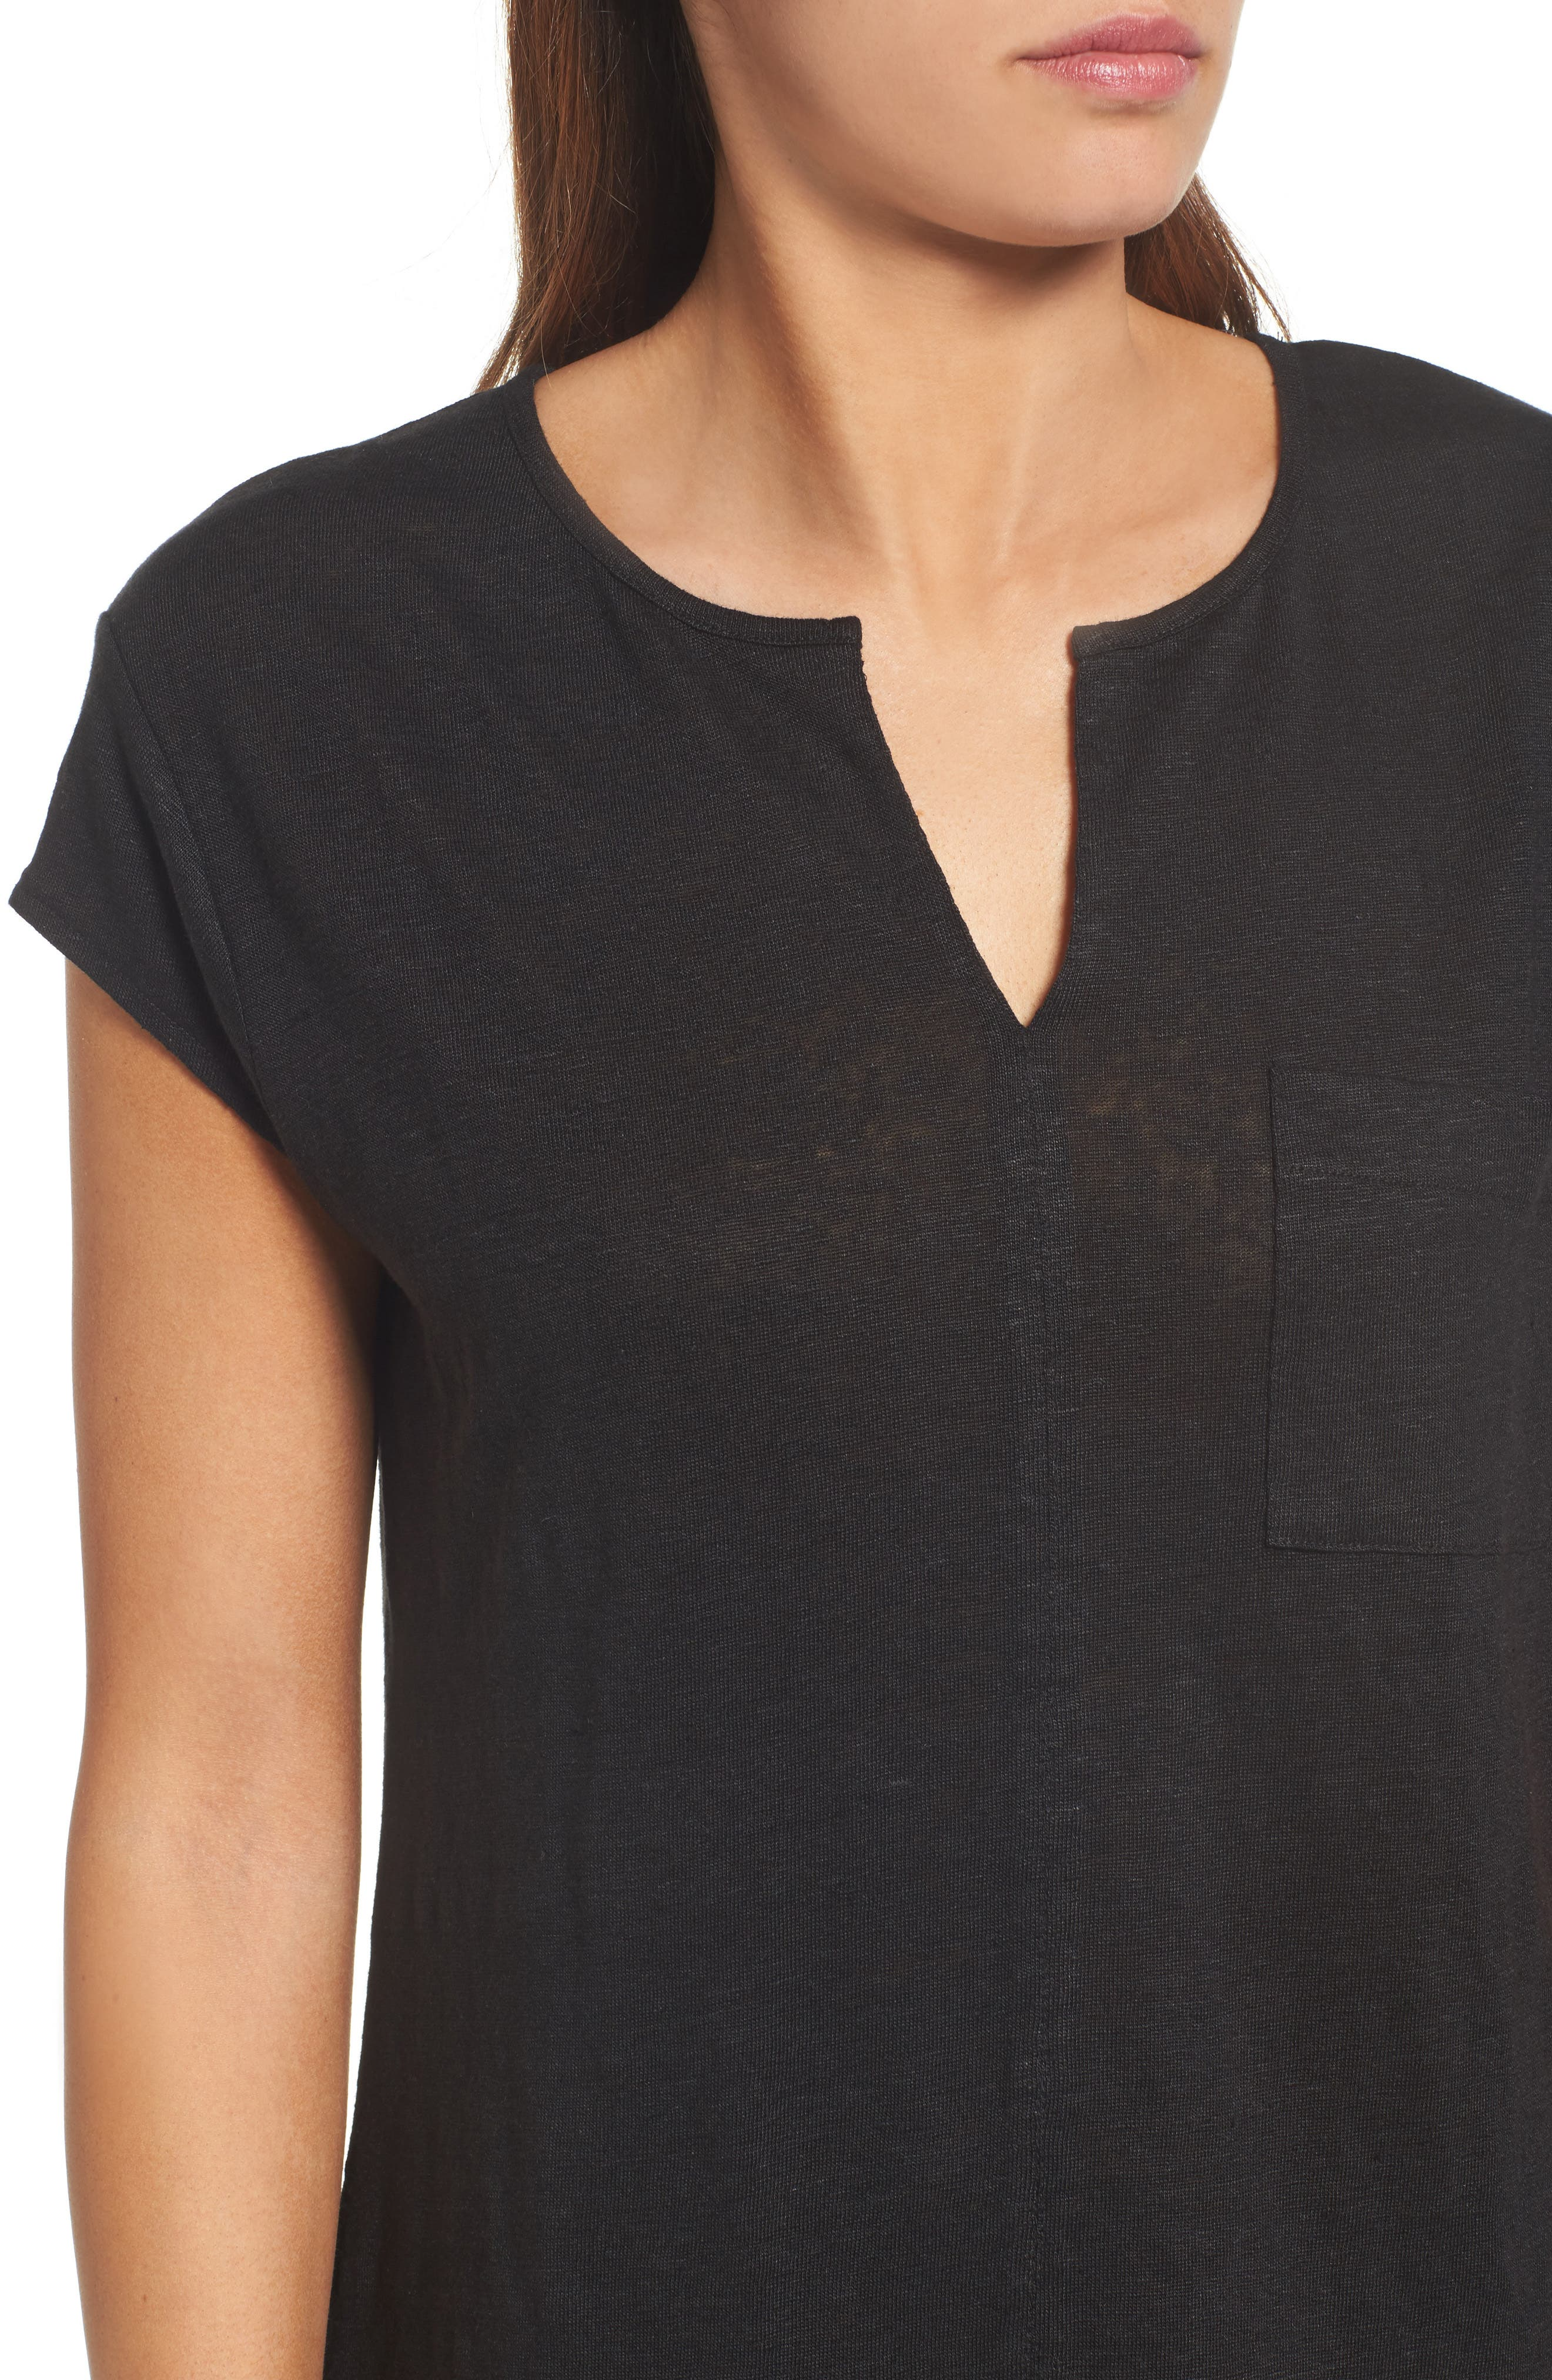 City Mix Layered Look Tee,                             Alternate thumbnail 77, color,